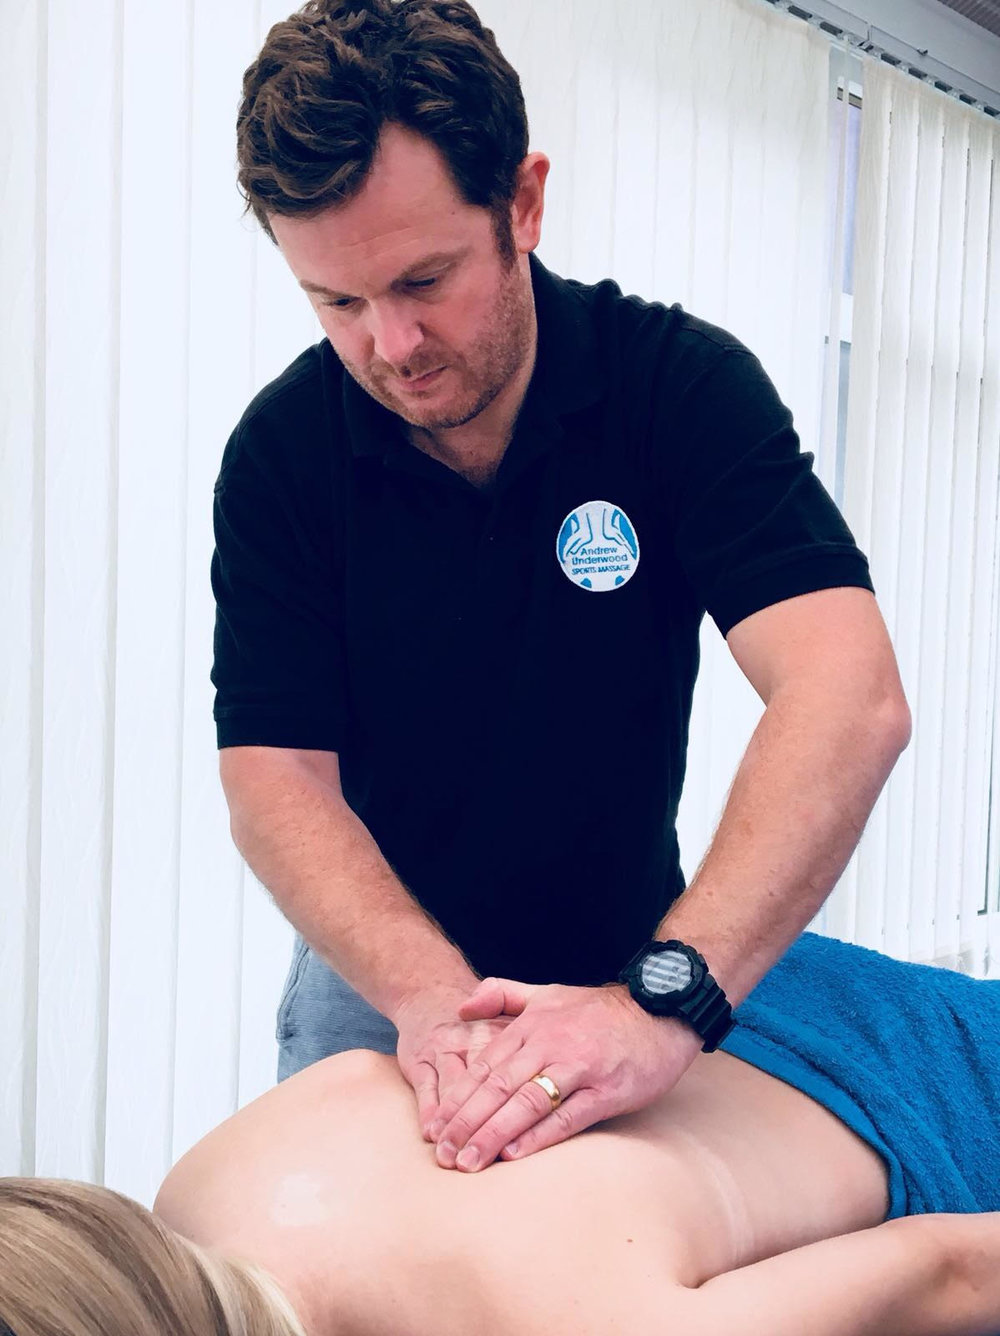 With a professionally equipped home clinic in Studley on the borders between Warwickshire and Worcestershire, I can offer a sports massage of either 30 or 60 minutes (or longer if required).   In addition to that, I am now also based twice a week at Cycling Fitness Centre in Umberslade Business park (www.cyclingfitnesscentre.co.uk), please visit their website to find out how to book.  Equally, I can travel to any location of your choice within an approximately 15 mile radius, covering Redditch, Henley in Arden, Alcester, Warwick and Stratford on Avon.  You don't need to bring anything, as I will come fully equipped with a professional massage bench, towels and oils. -